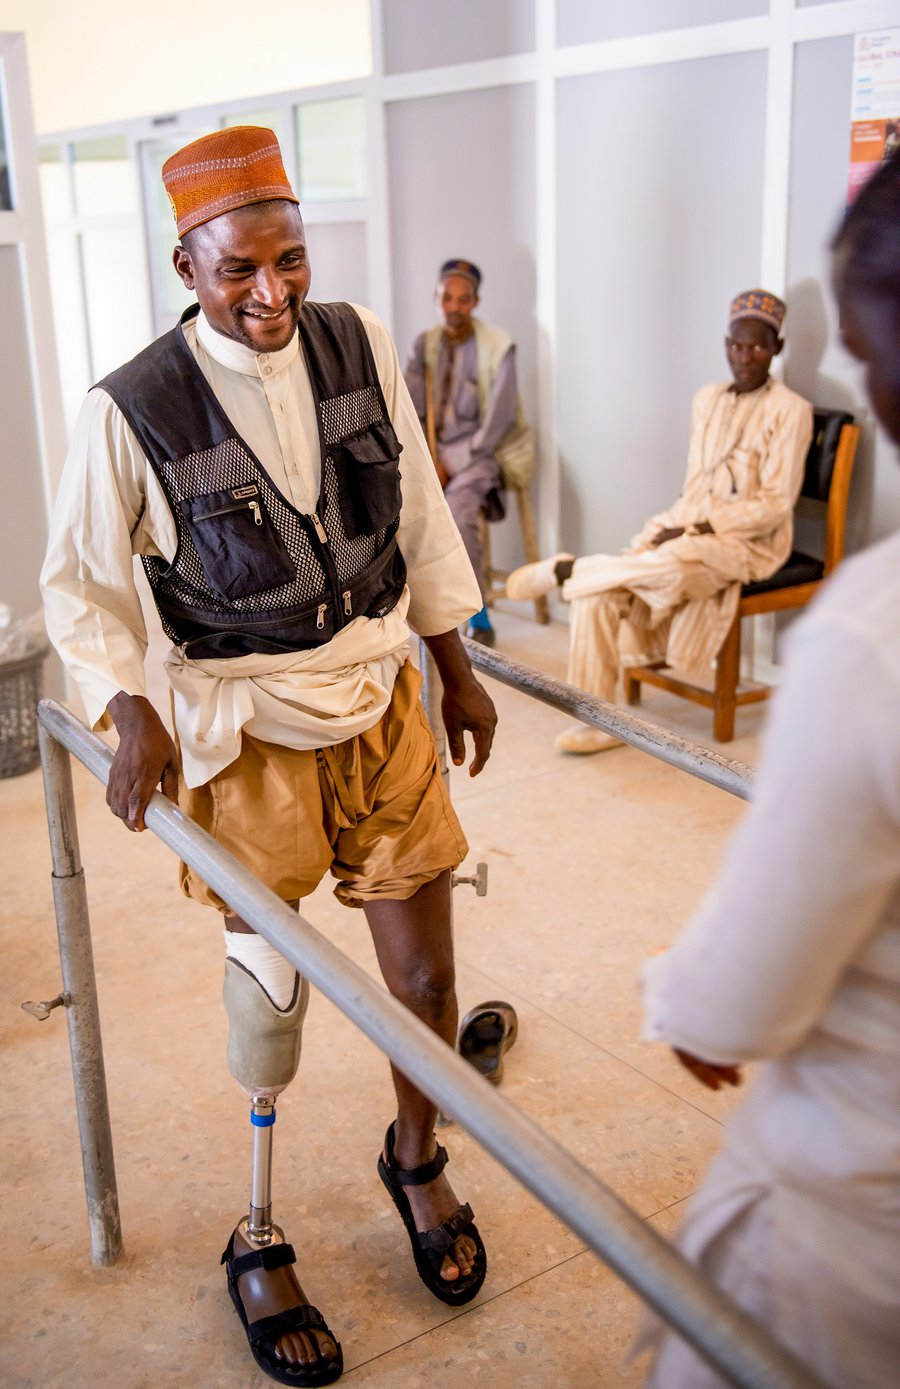 Nuhu holds onto handrails at TLM's workshop as he practices using his new prosthetic leg